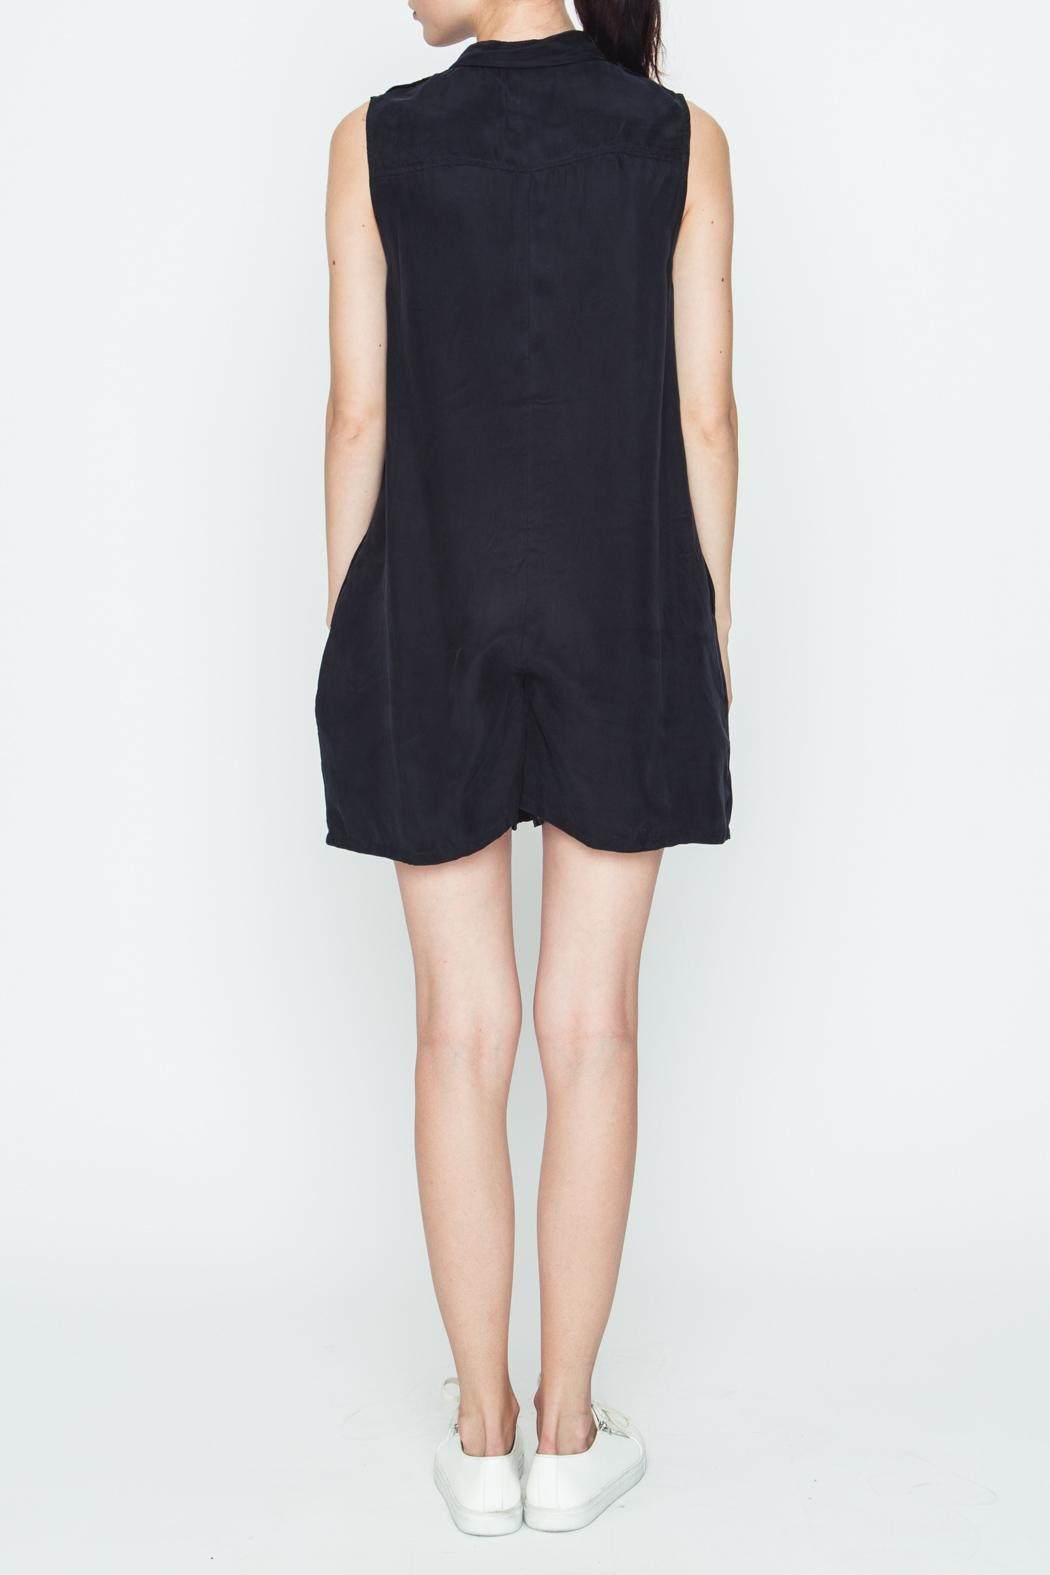 Movint Black Boxy Romper - Side Cropped Image